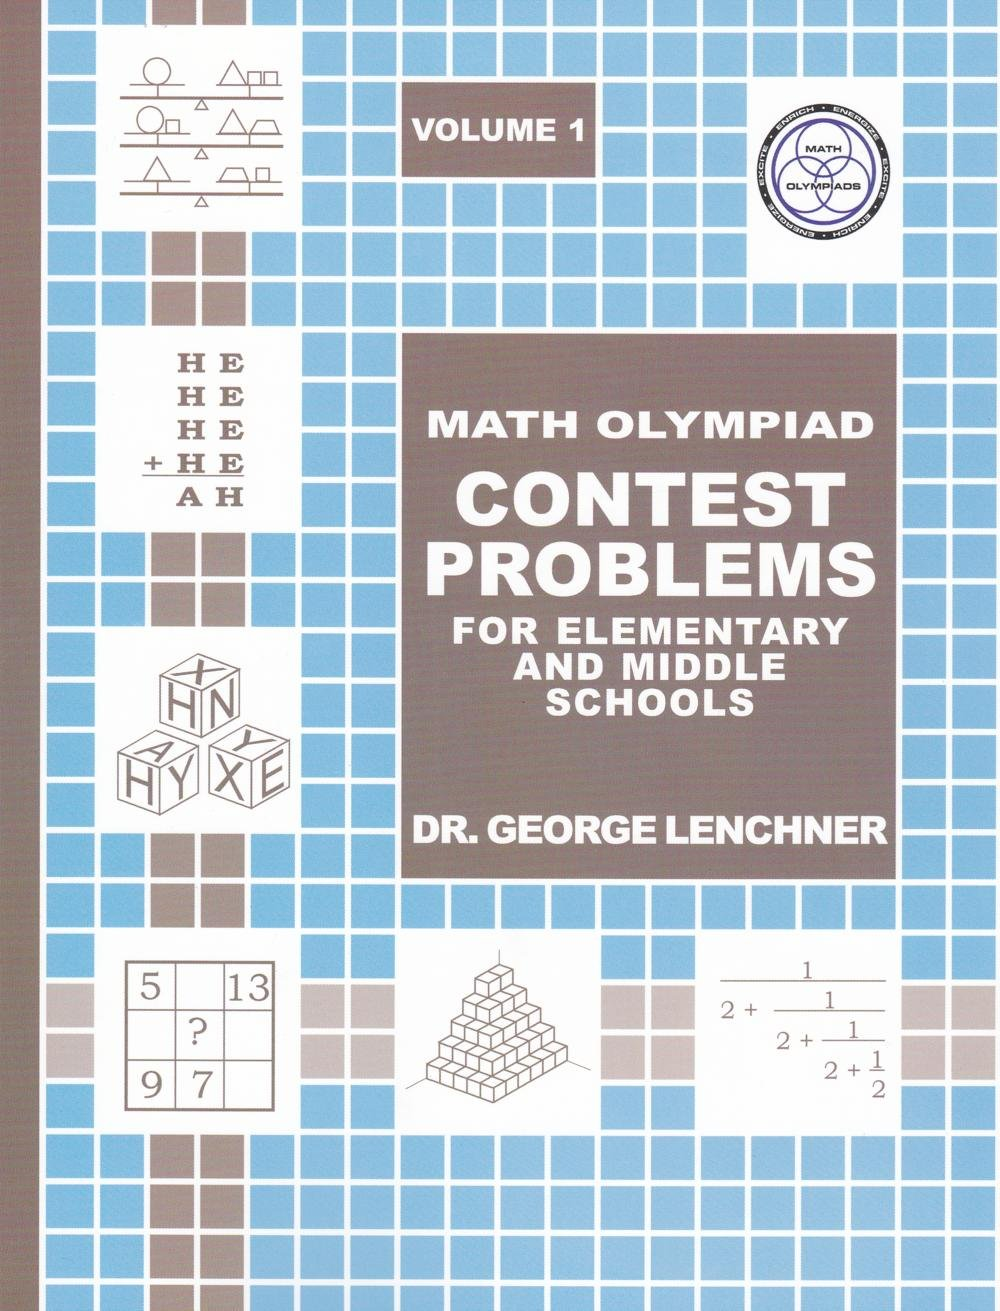 Math Olympiad MOEMS Contest Problems 1, 2, and 3, and Math Olympiad